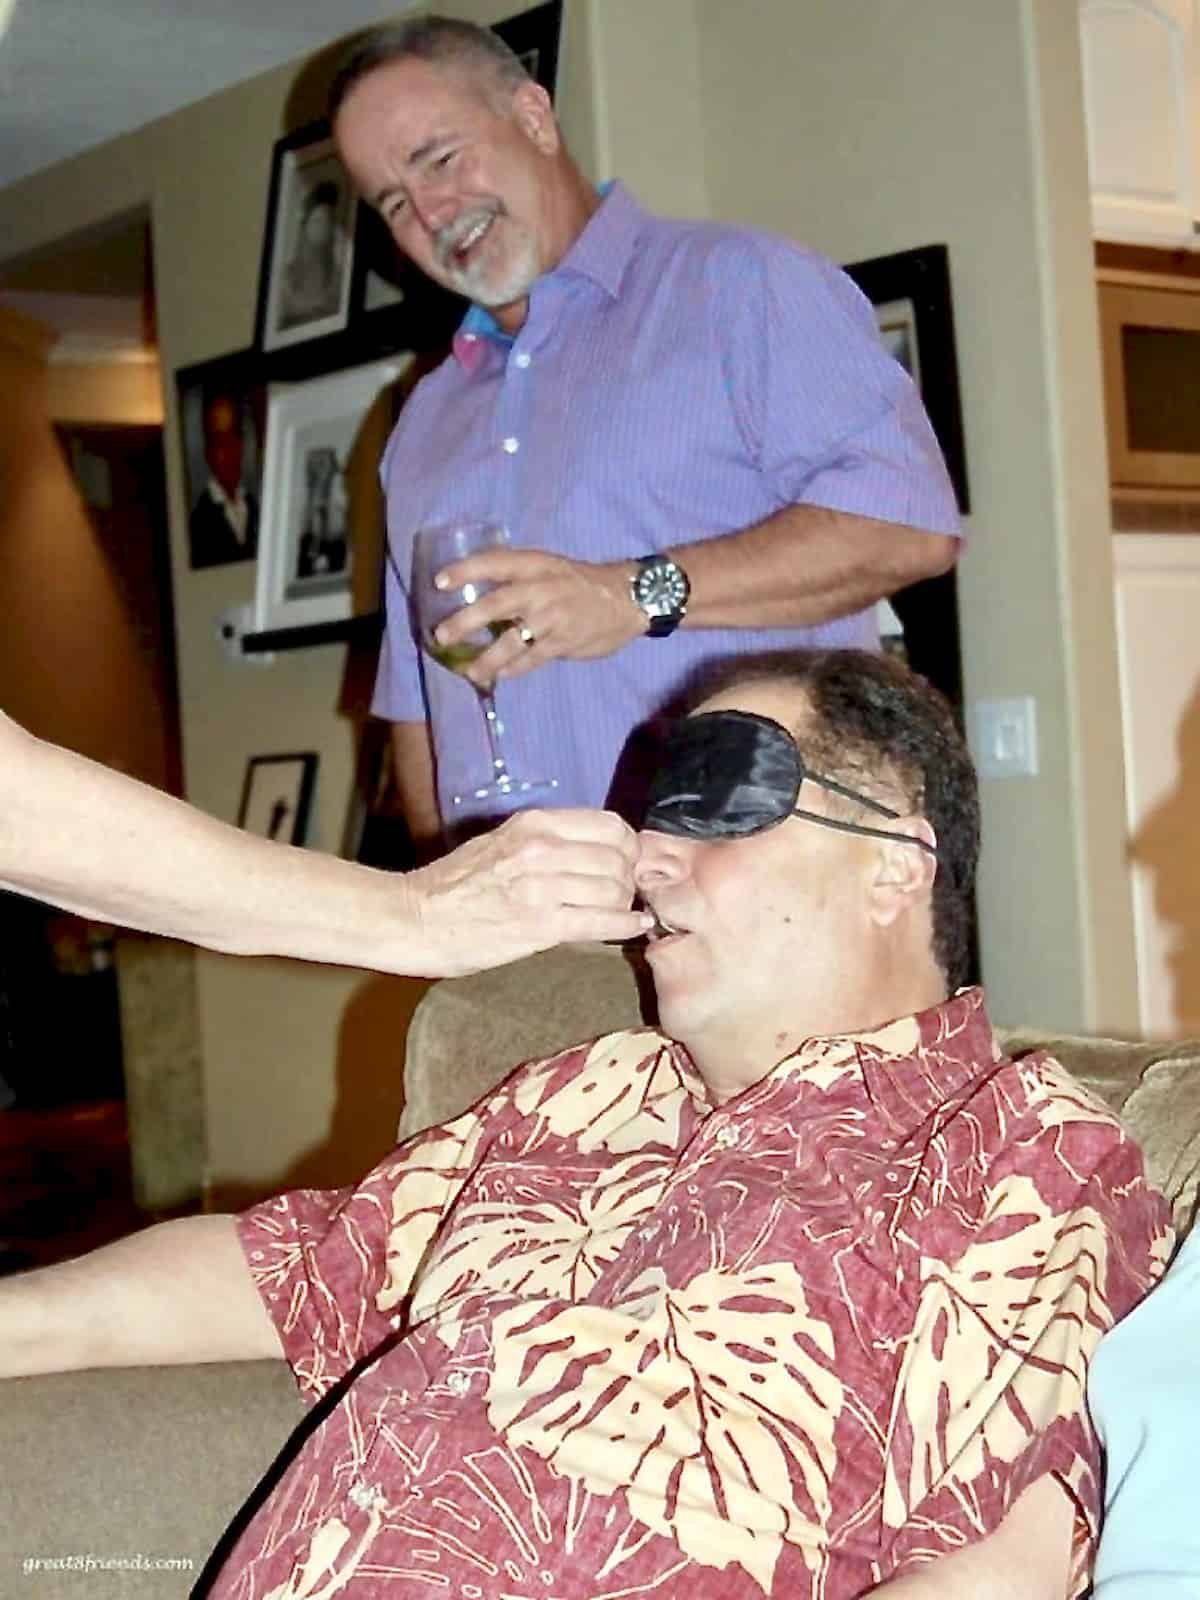 A man with a blindfold on his eyes while someone is feeding him and another man in the background watching with a smile.